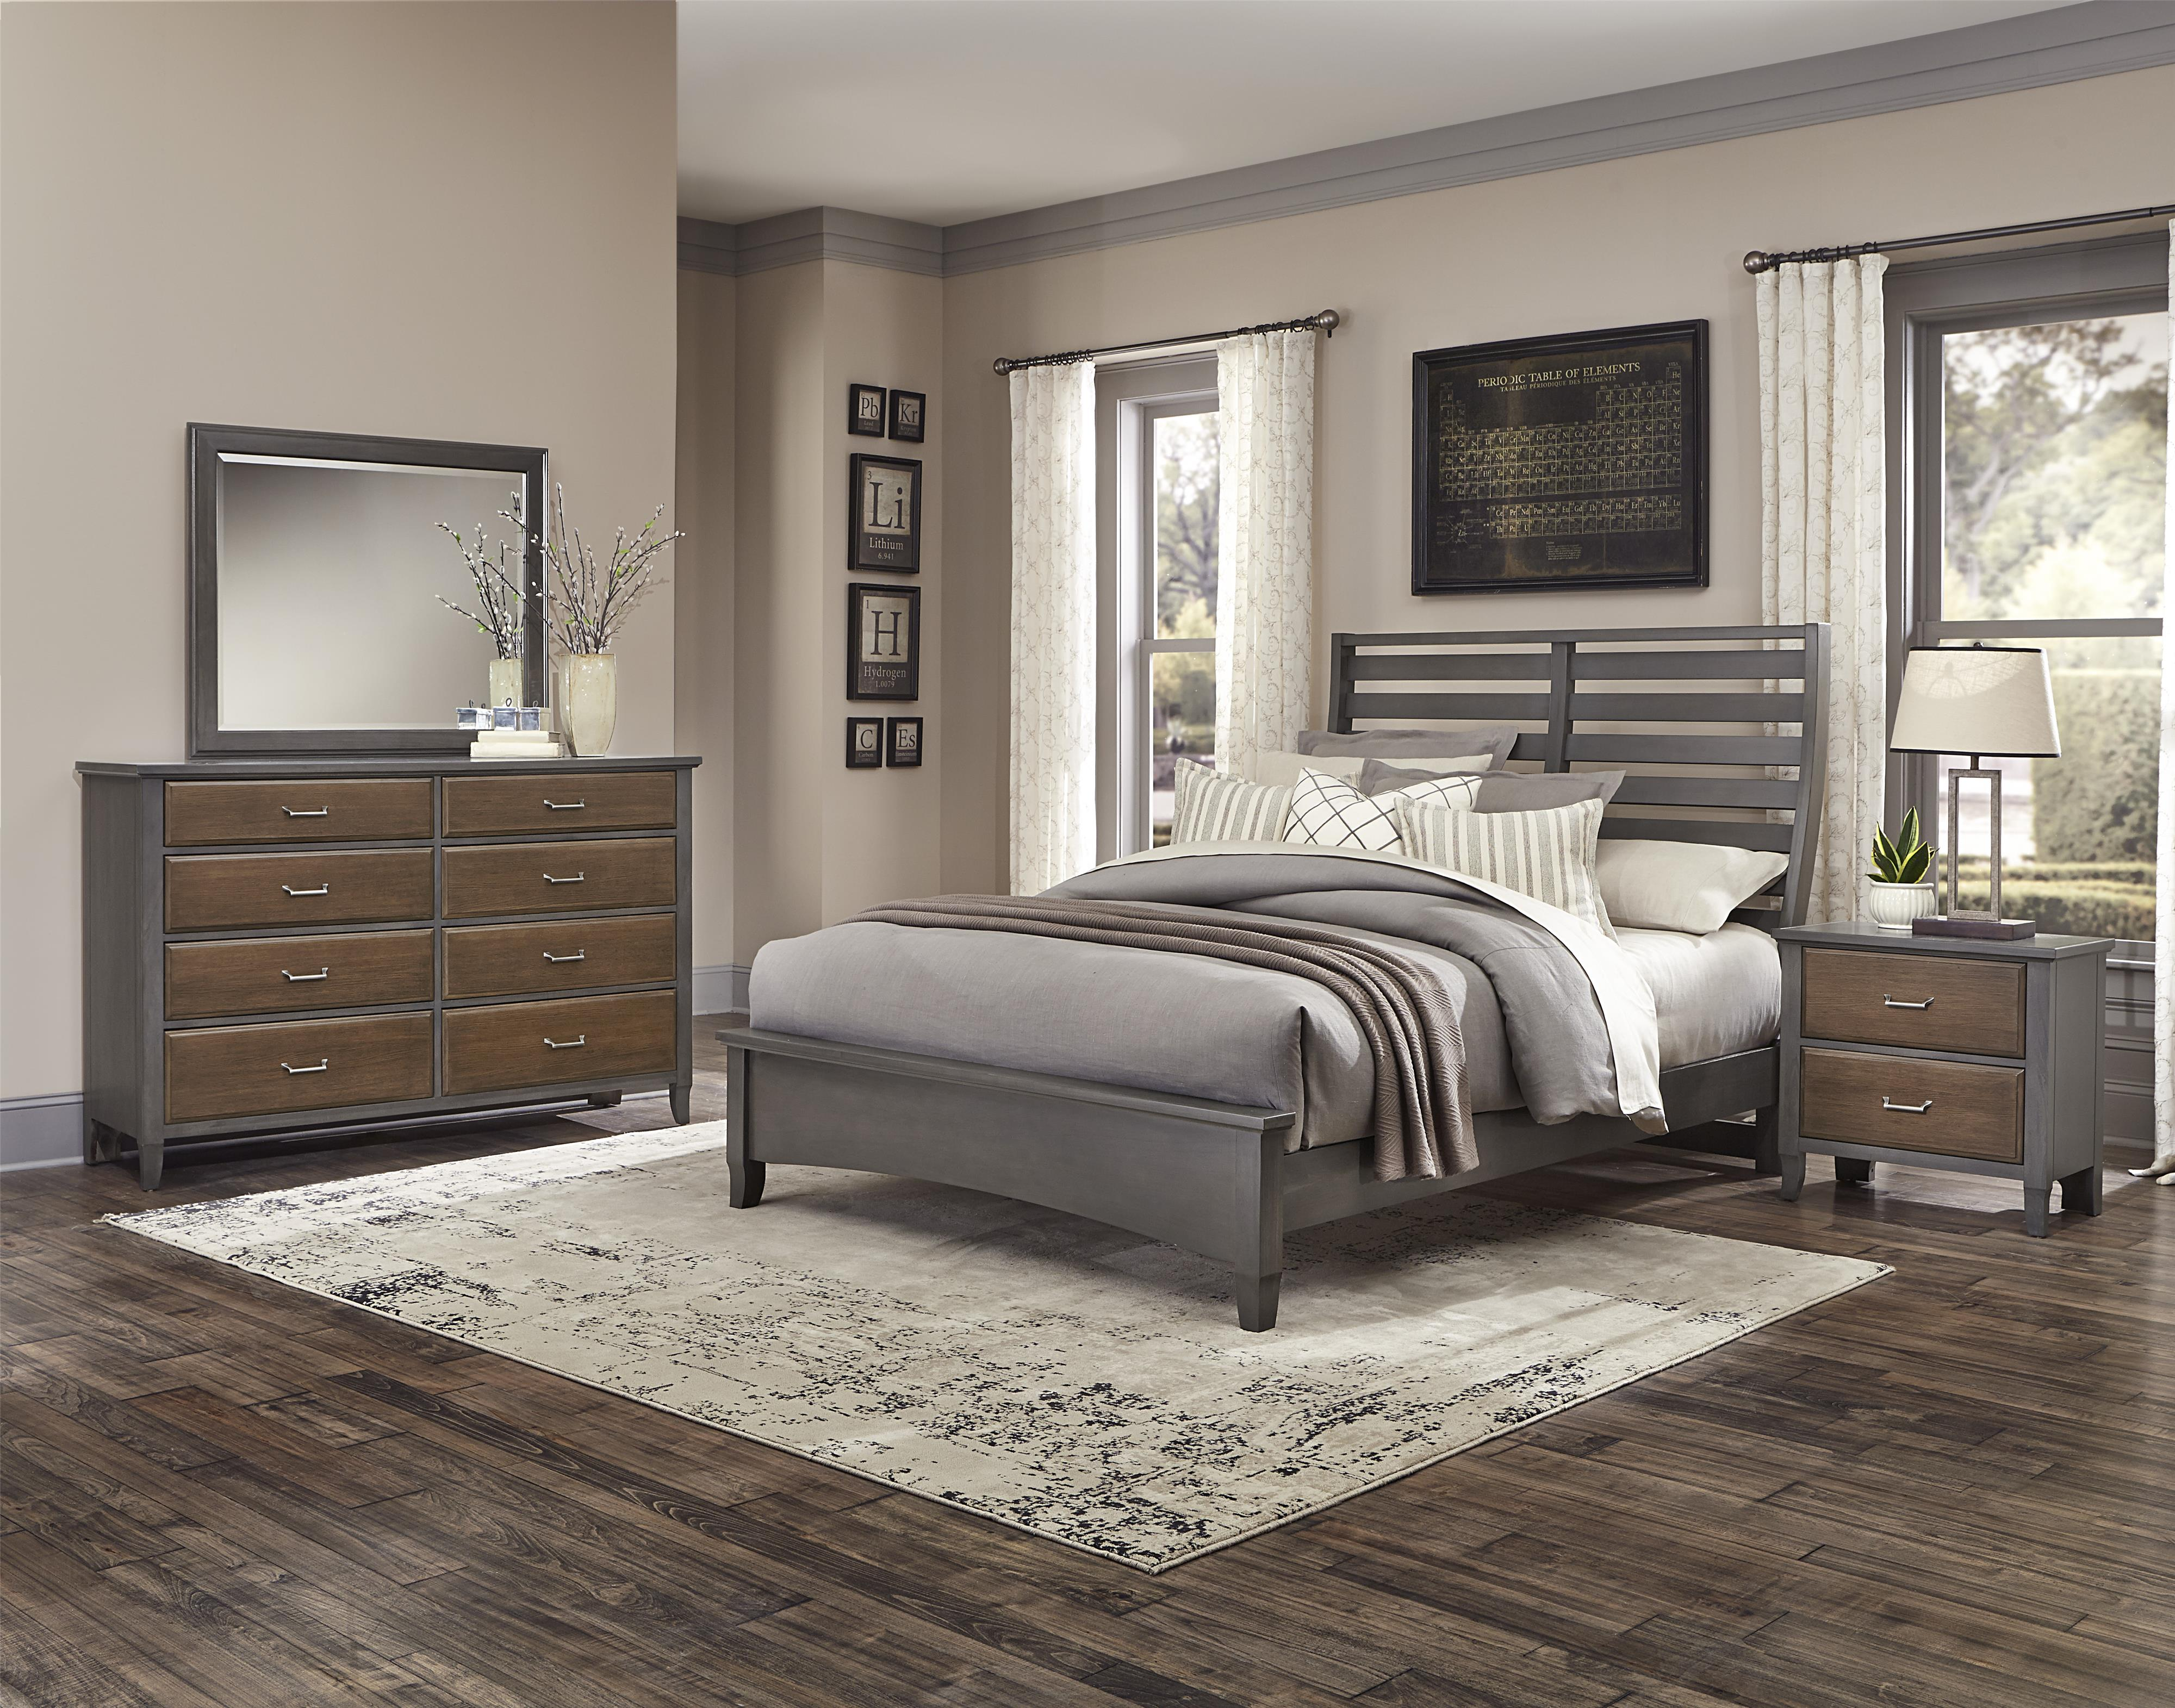 Vaughan Bassett Commentary Queen Bedroom Group - Item Number: 394 Q Bedroom Group 6